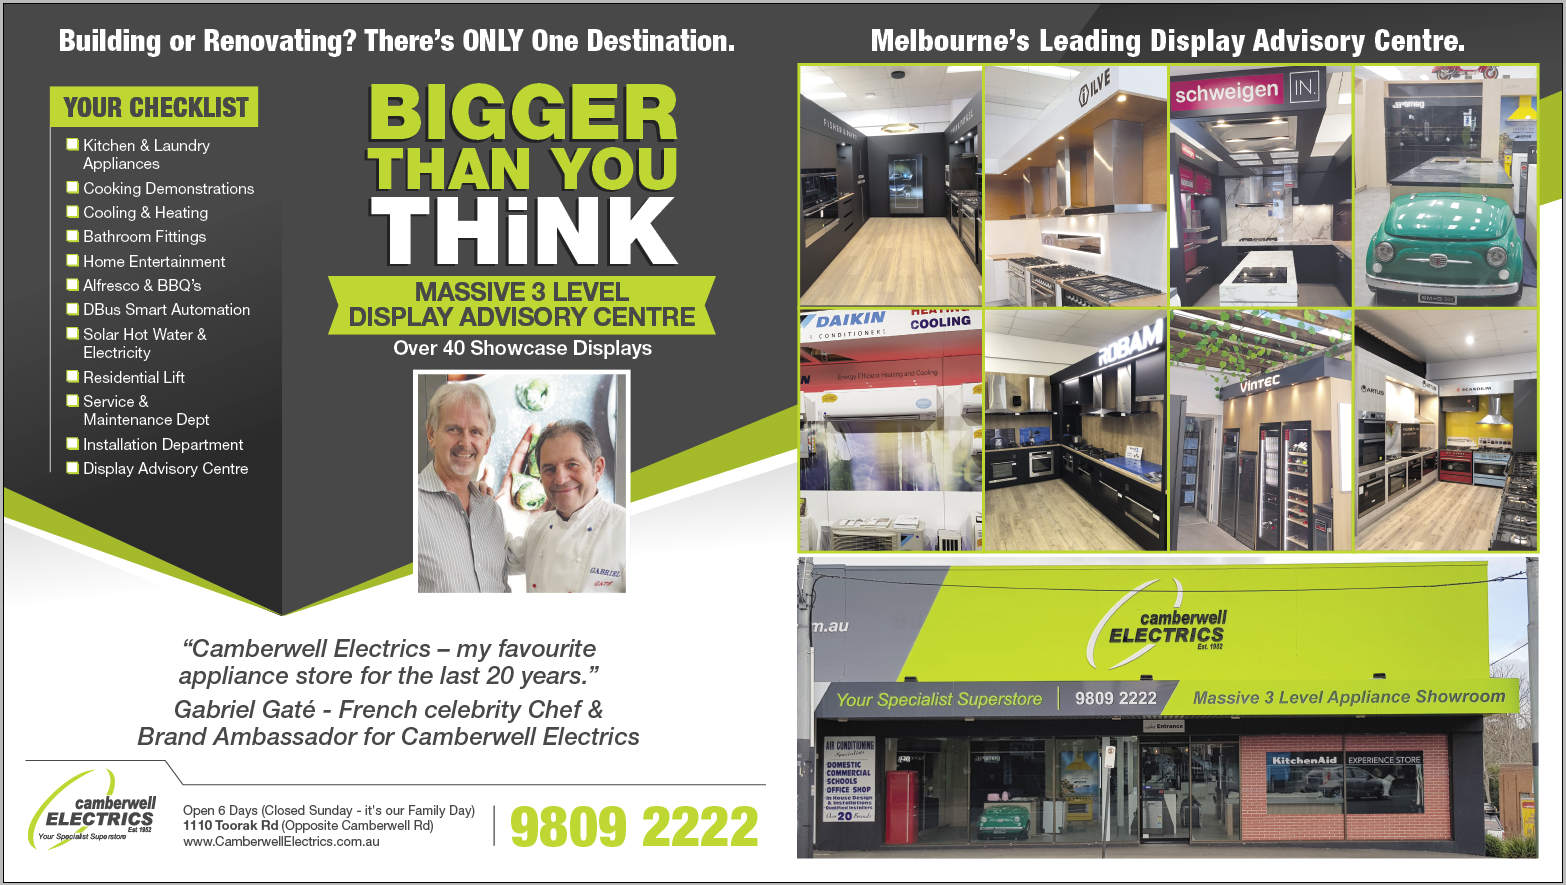 Camberwell Electrics Store - Bigger than you think June 2018